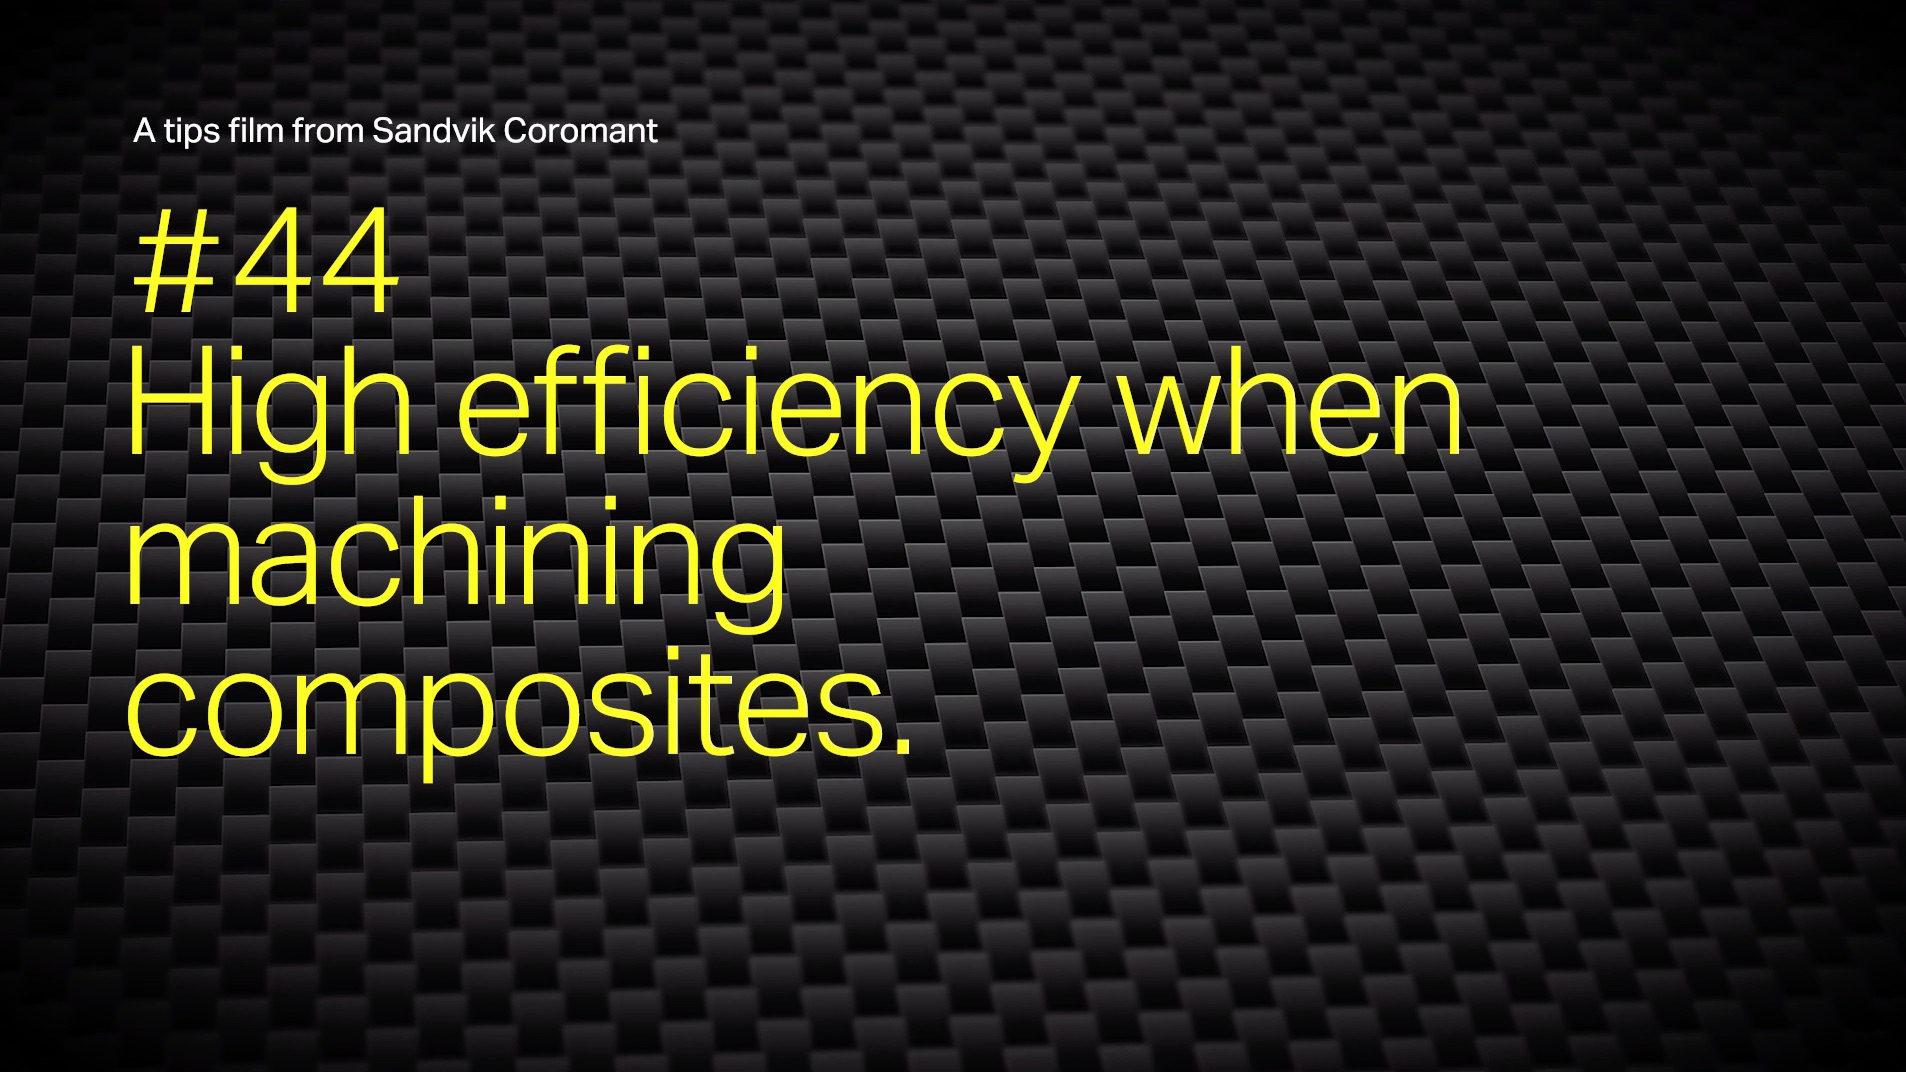 Metal cutting knowledge >> Technical guide from Sandvik Coromant